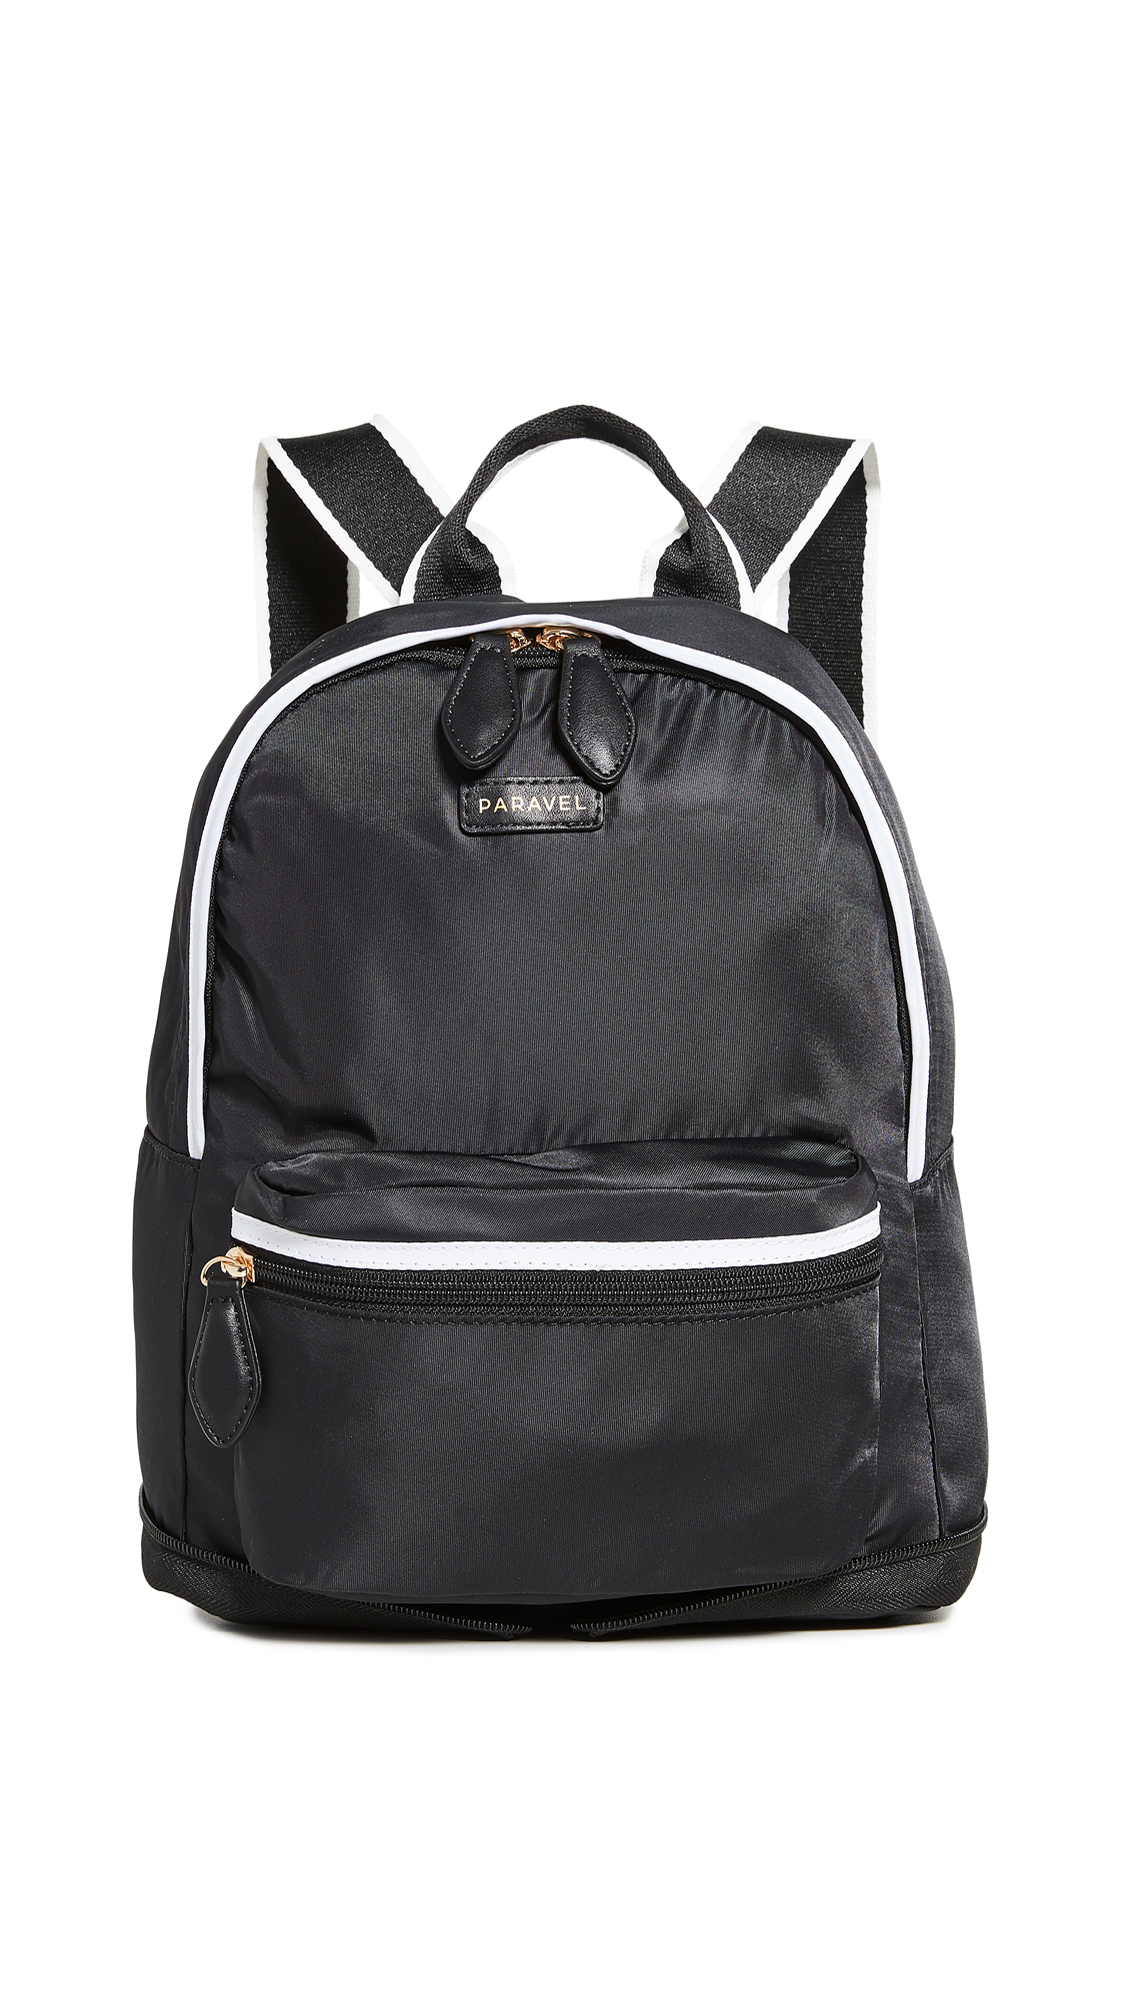 Paravel Mini Fold Up Backpack